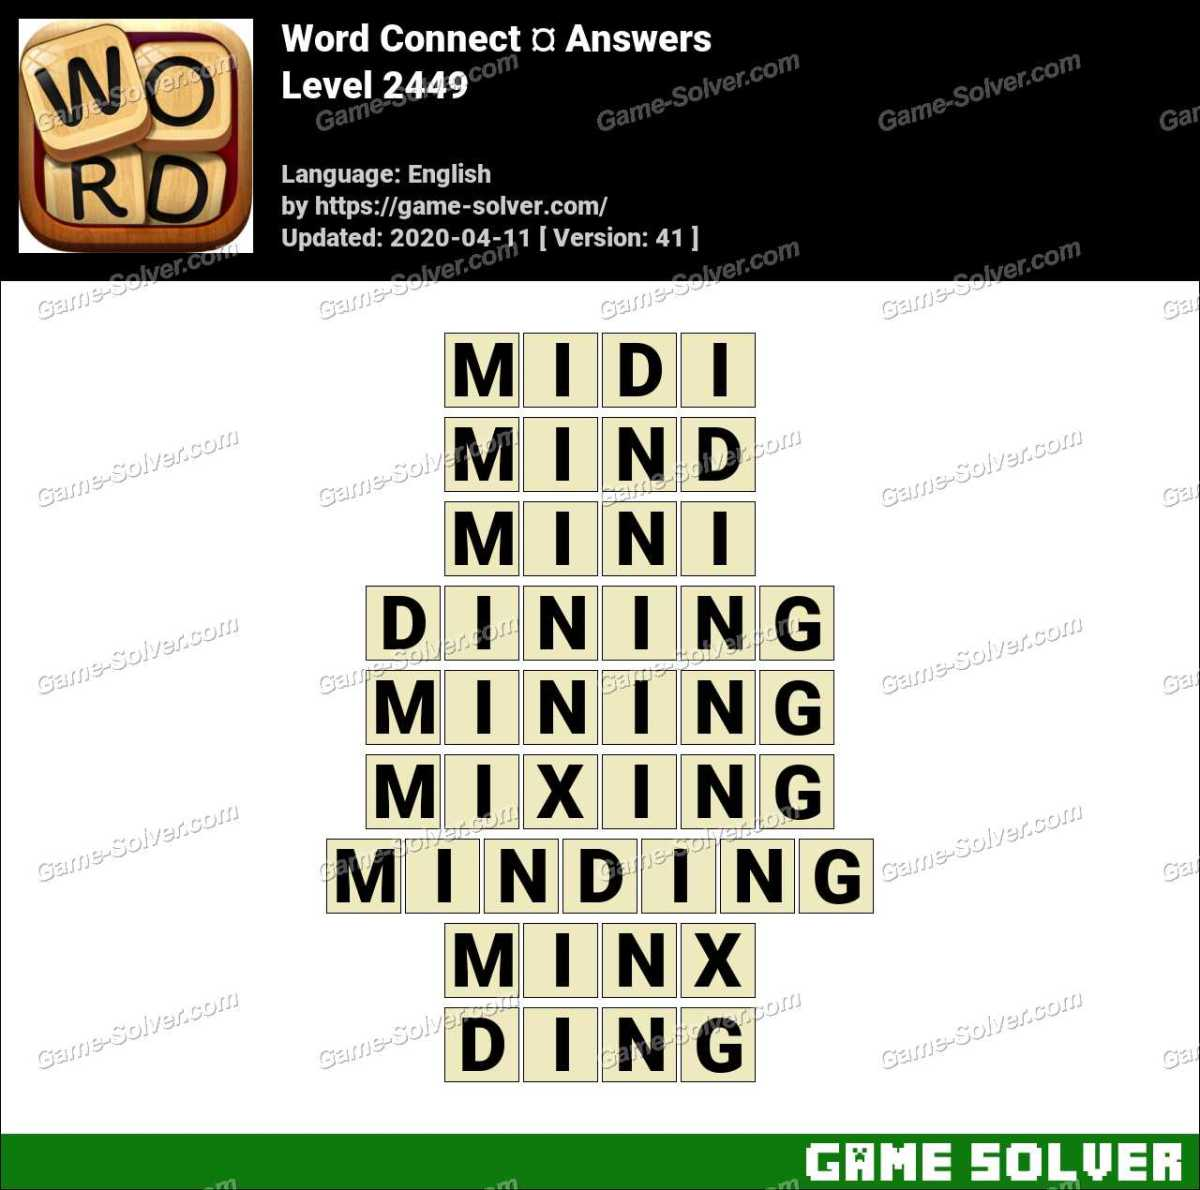 Word Connect Level 2449 Answers